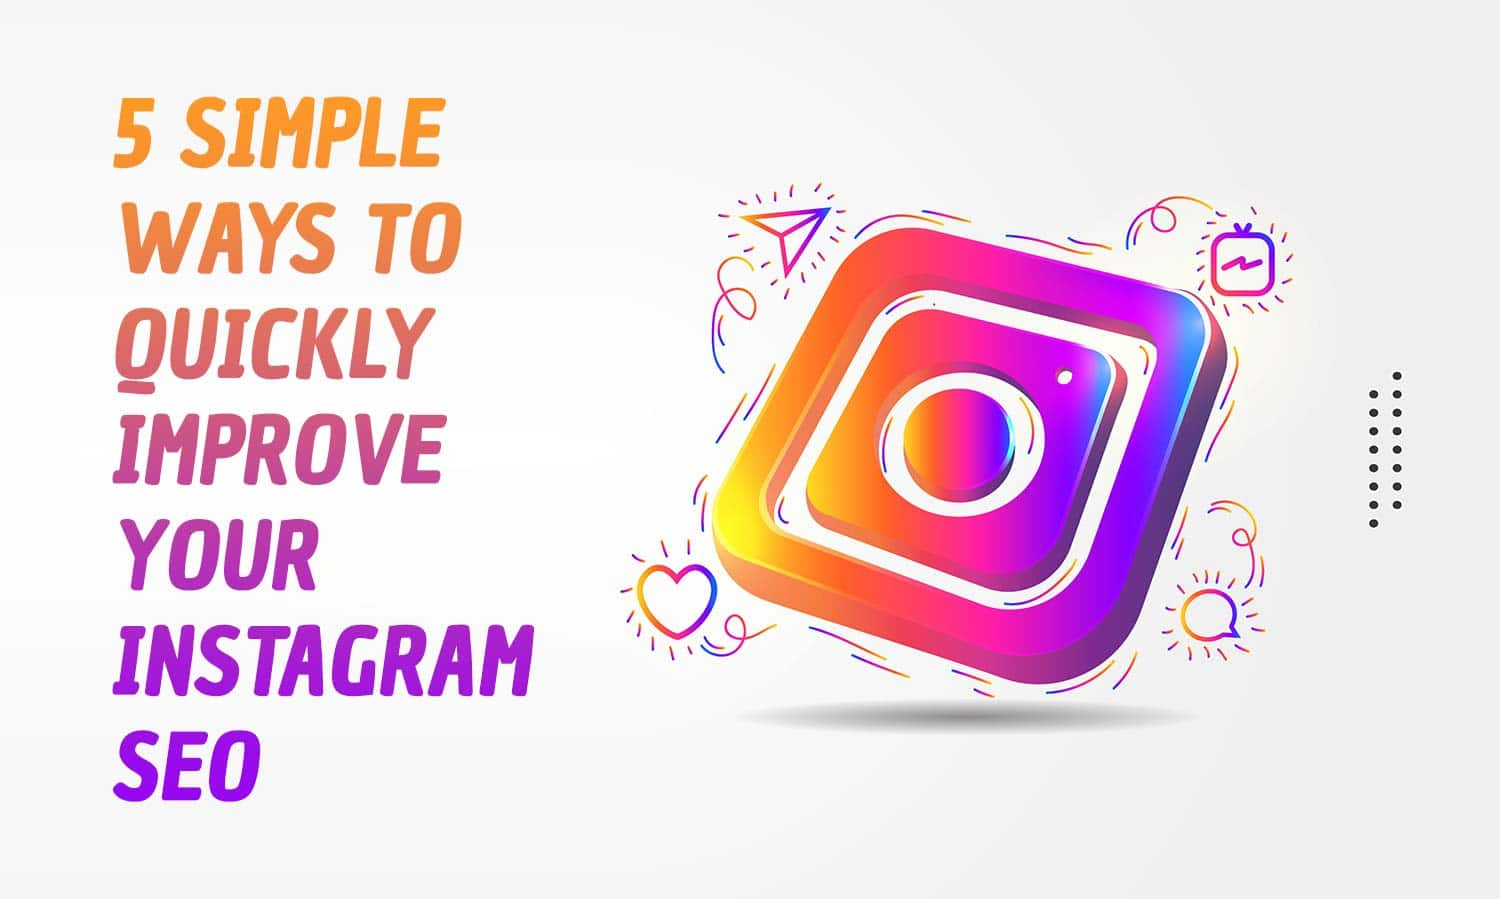 Best Ways to Improve Your Instagram SEO and Increase Visibility